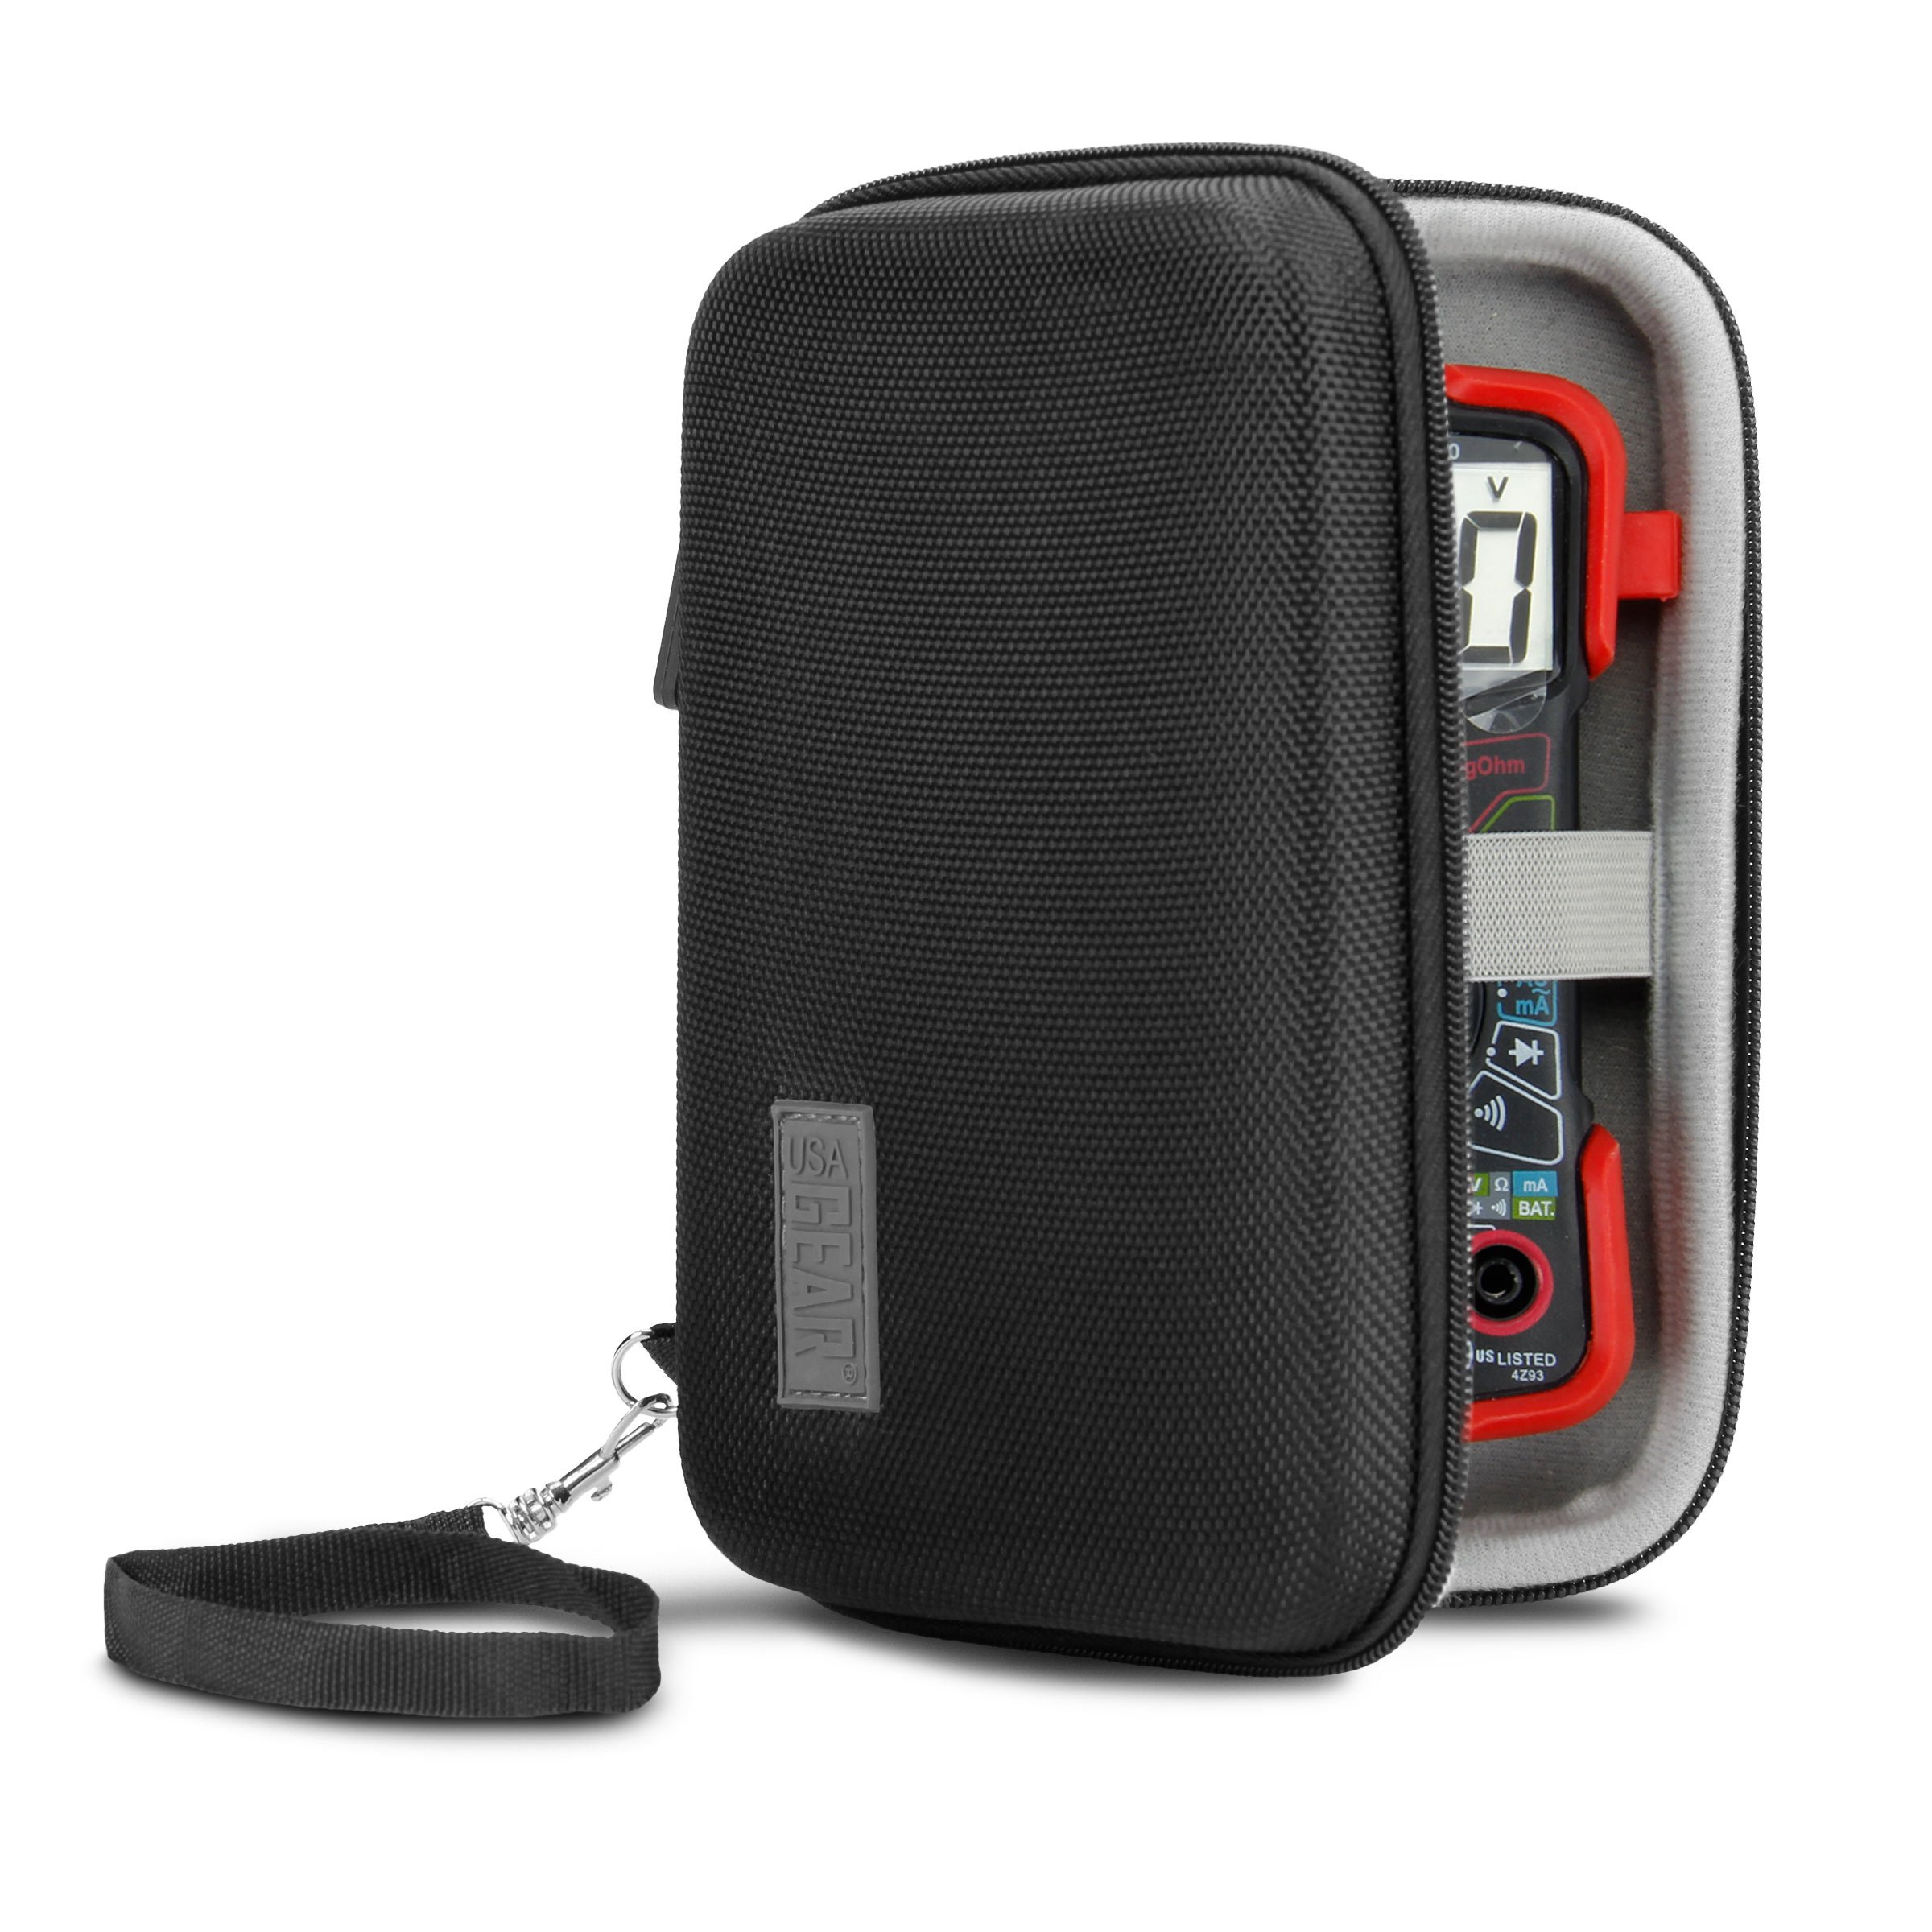 USA Gear Protective Case for Innova 3320 Digital Multimeter with Hard Shell Exterior and Wrist Strap Mesh Pocket Holds Cables, Batteries, Wire Strippers and More Electrical Testing Tools by USA Gear